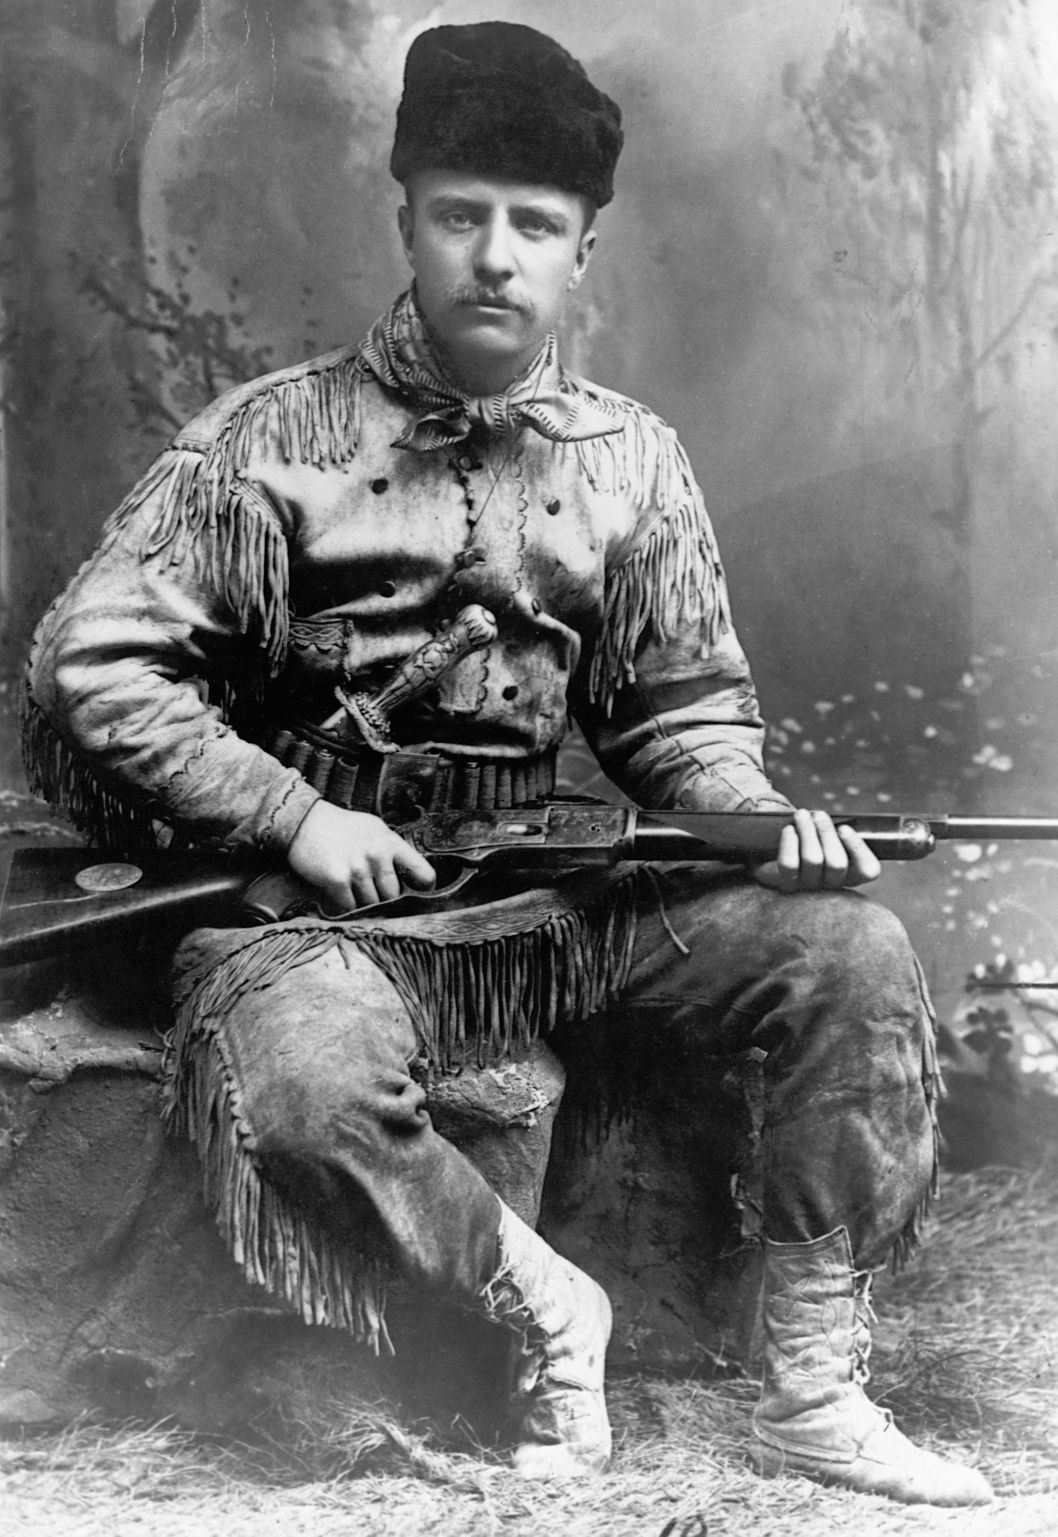 1885, USA --- A portrait of Theodore Roosevelt (1858-1919) in buckskin, without his trademark glasses. This portrait is dated 1885, the year he retired to his ranch in the Dakota Territory, following the death of his mother and first wife. He would go on to become the Police Commissioner of New York City, Assistant Secretary of the Navy, a hero of the Spanish-American War, Governor of New York,  the 26th President of the US, and a winner of the Nobel Peace Prize. --- Image by ? CORBIS